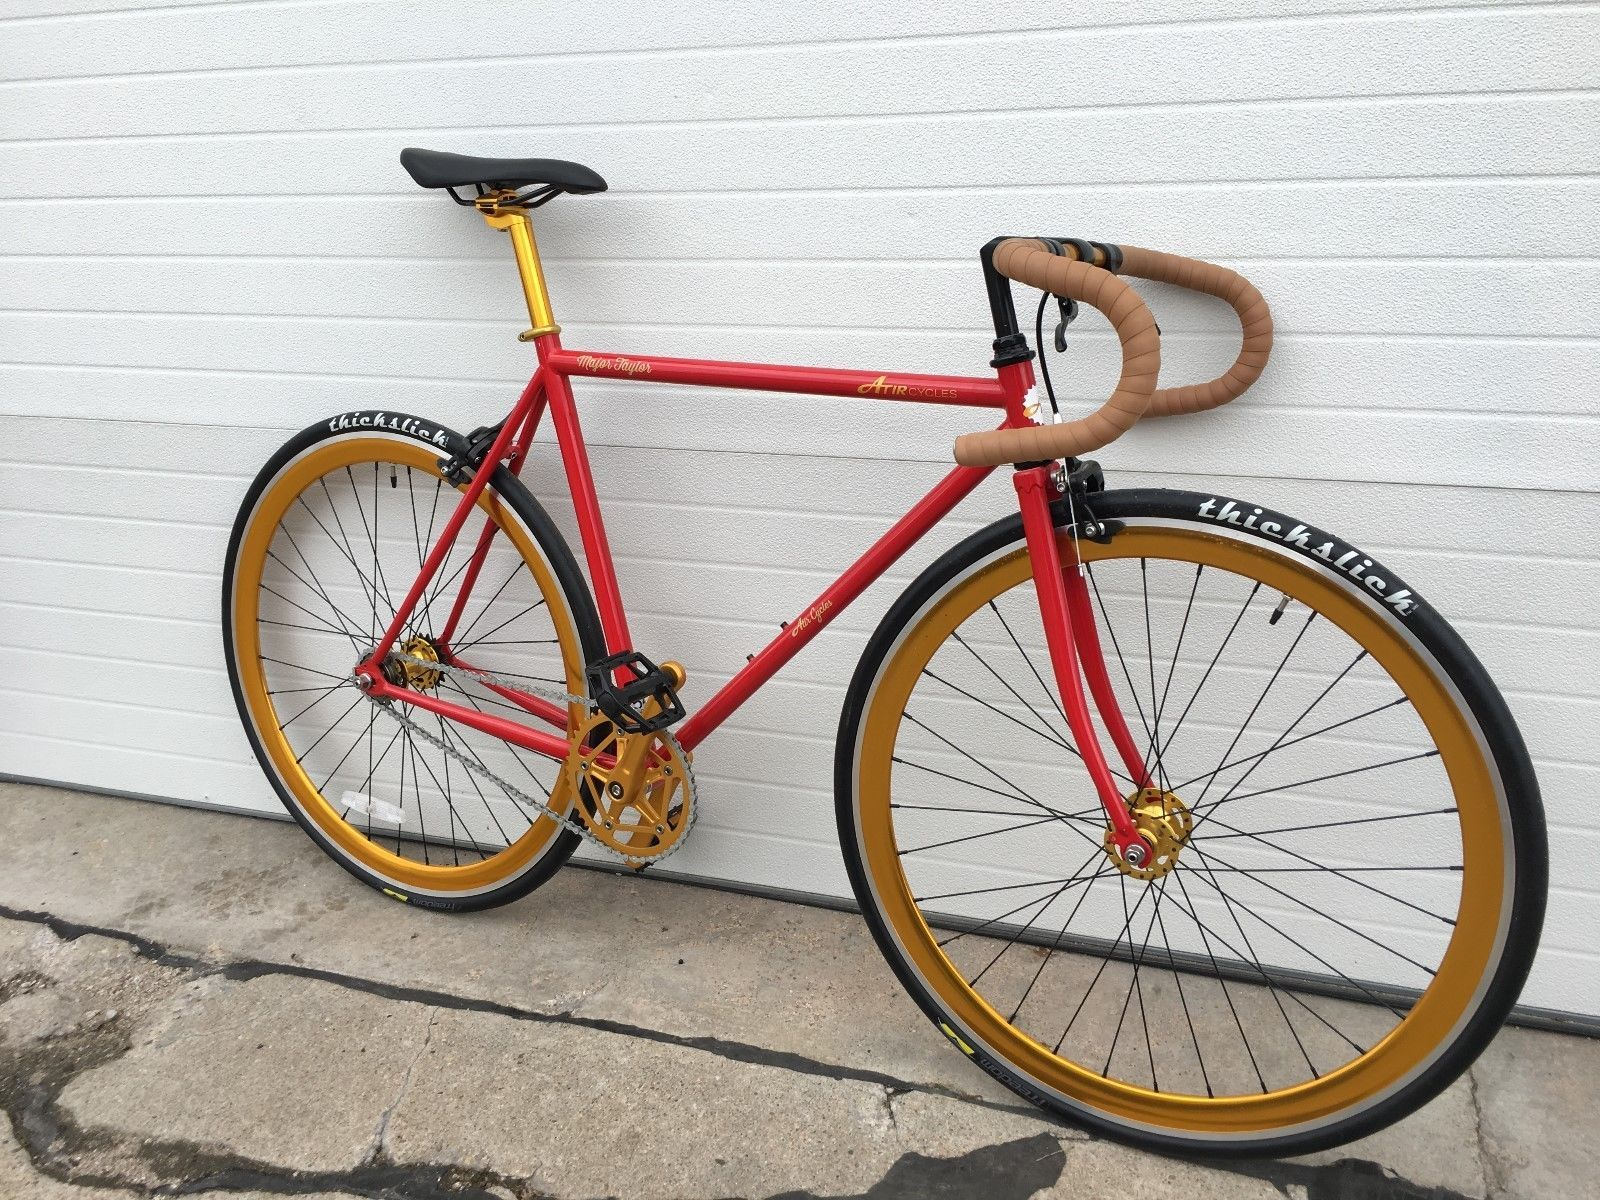 On Sale Atir Cycle Single Speed Fixed Gear Road Bike Ltd Chromoly